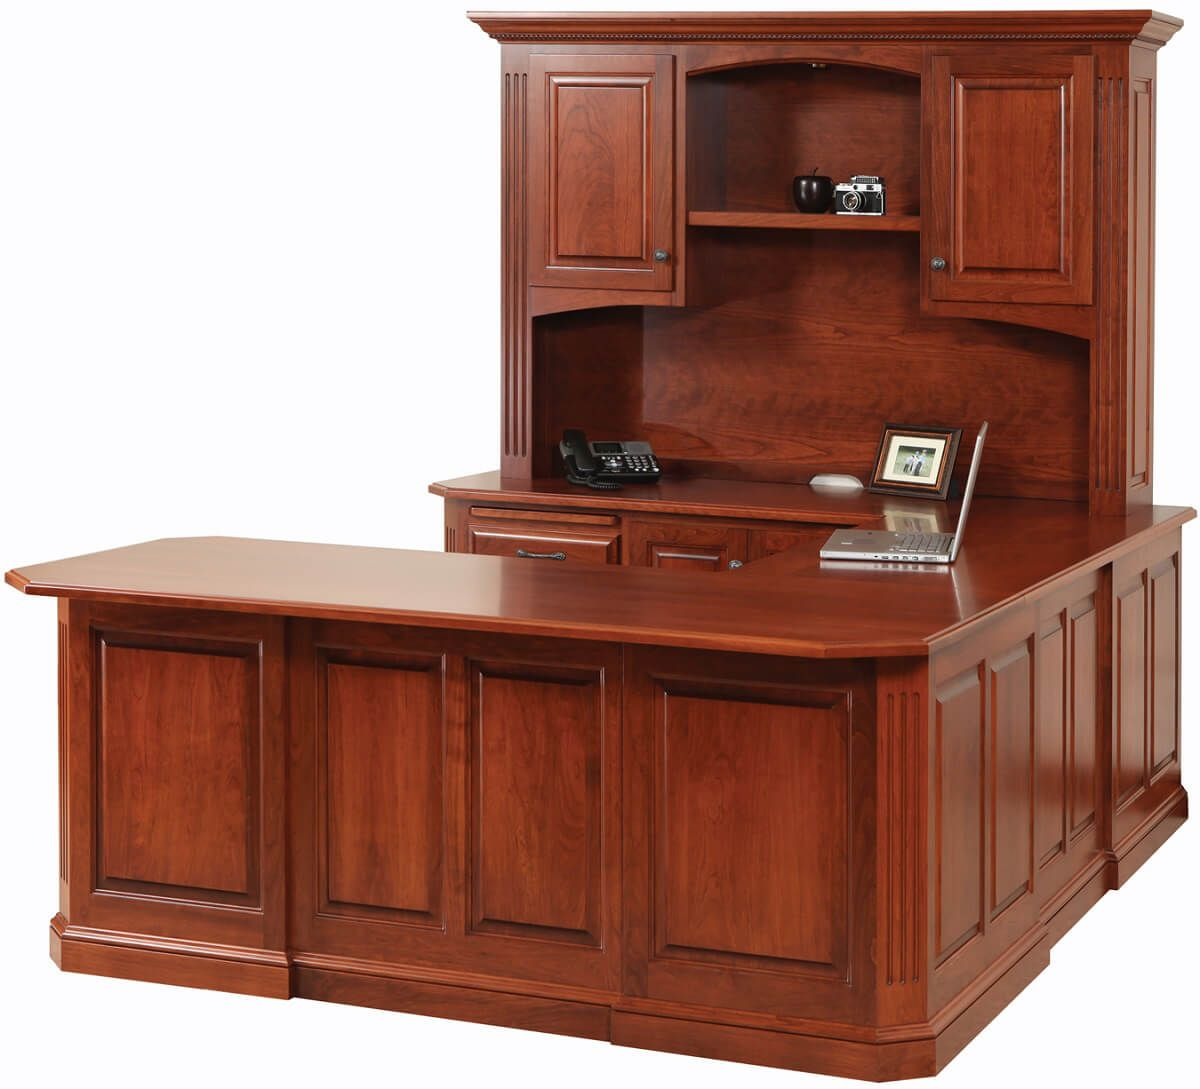 Cavalier U-Shaped Desk